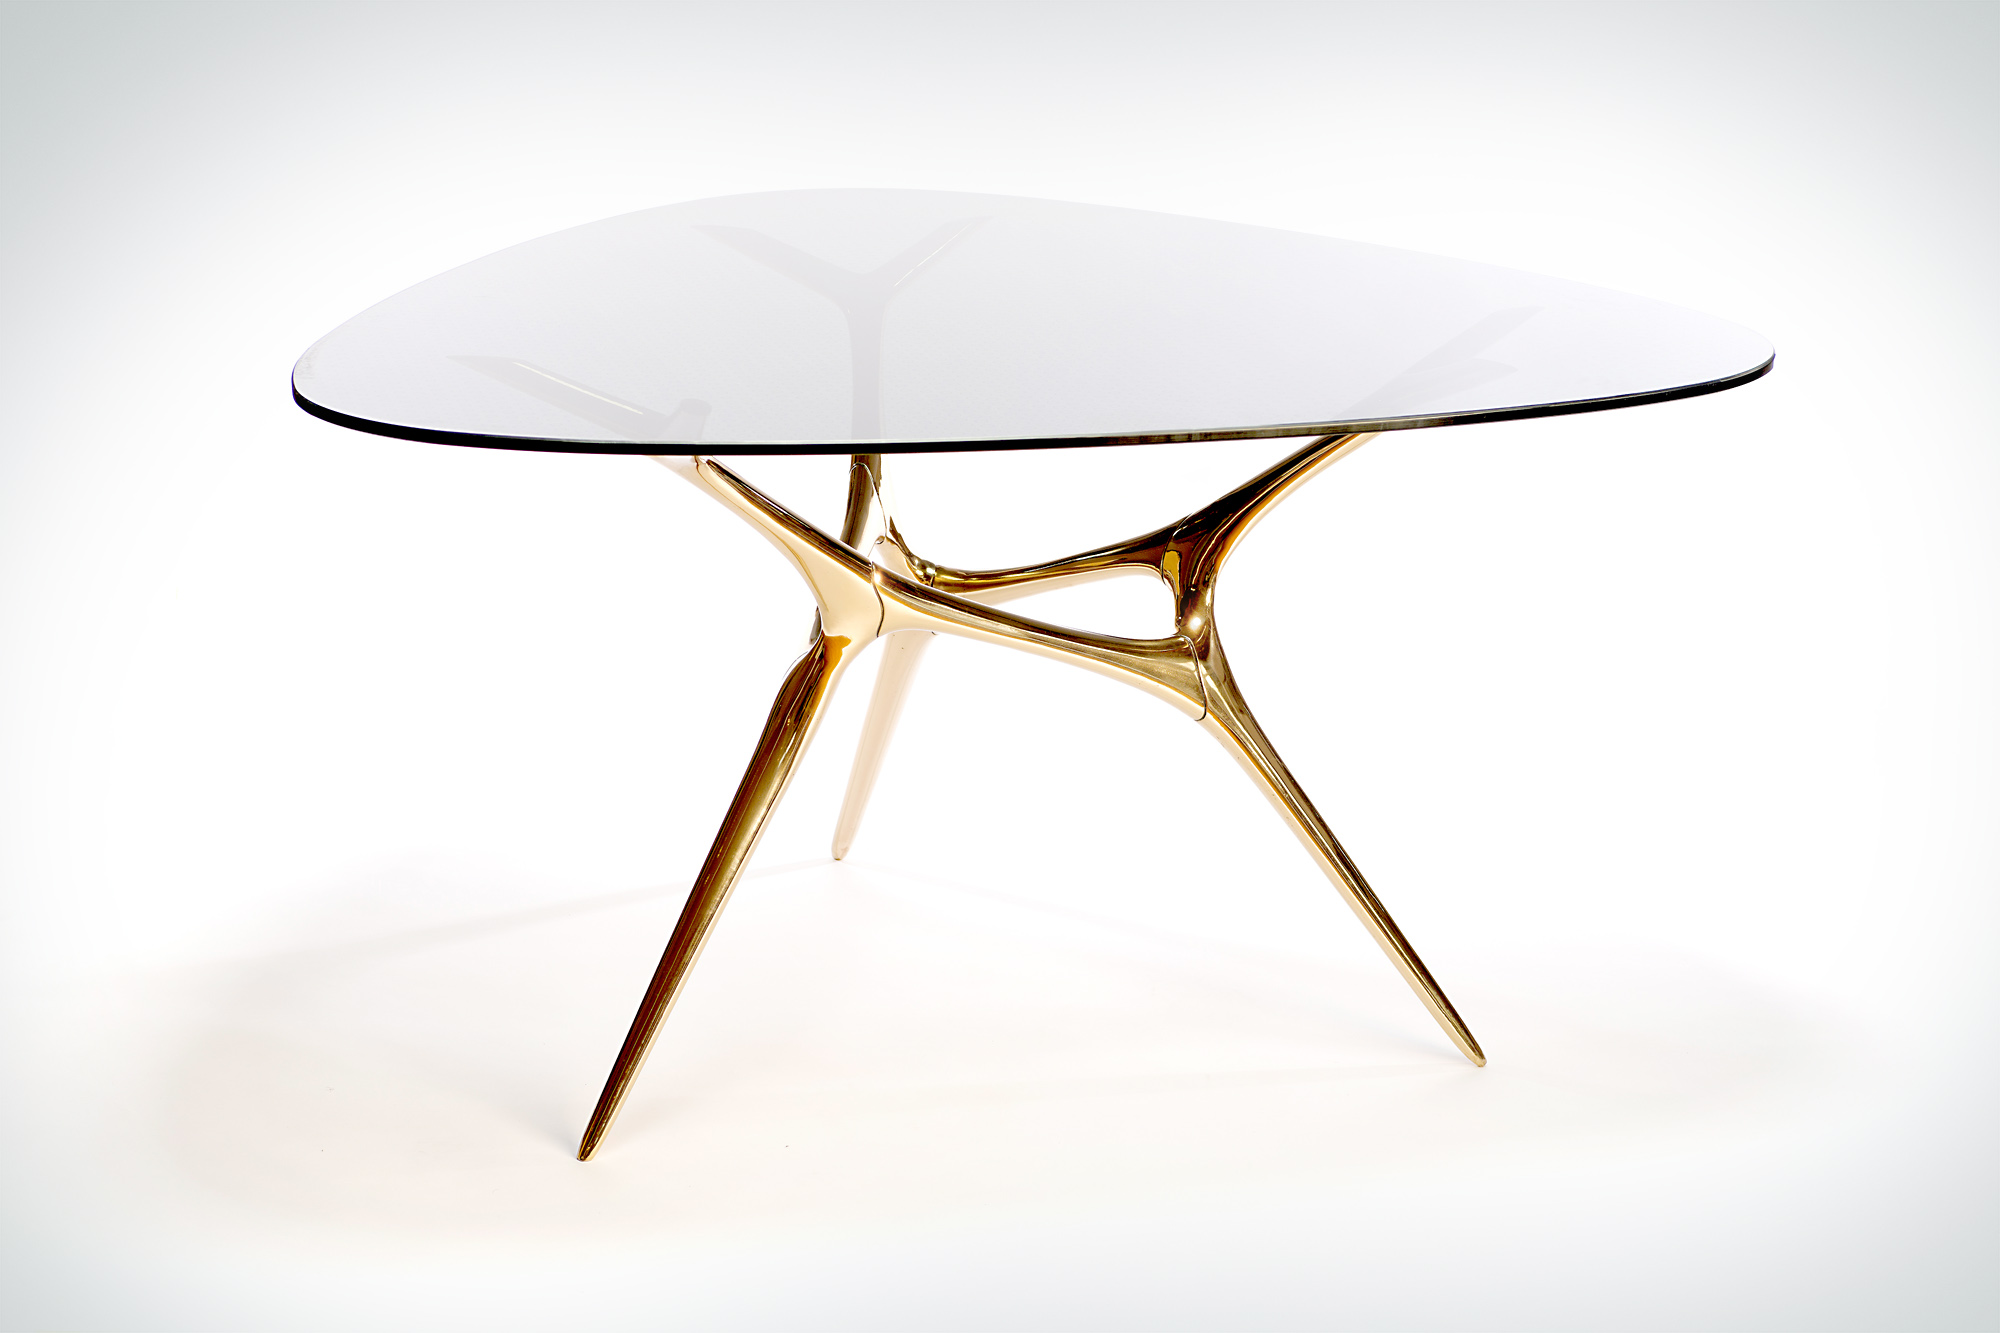 Timothy Schreiber, London. Exclusive objects, furniture and interiors